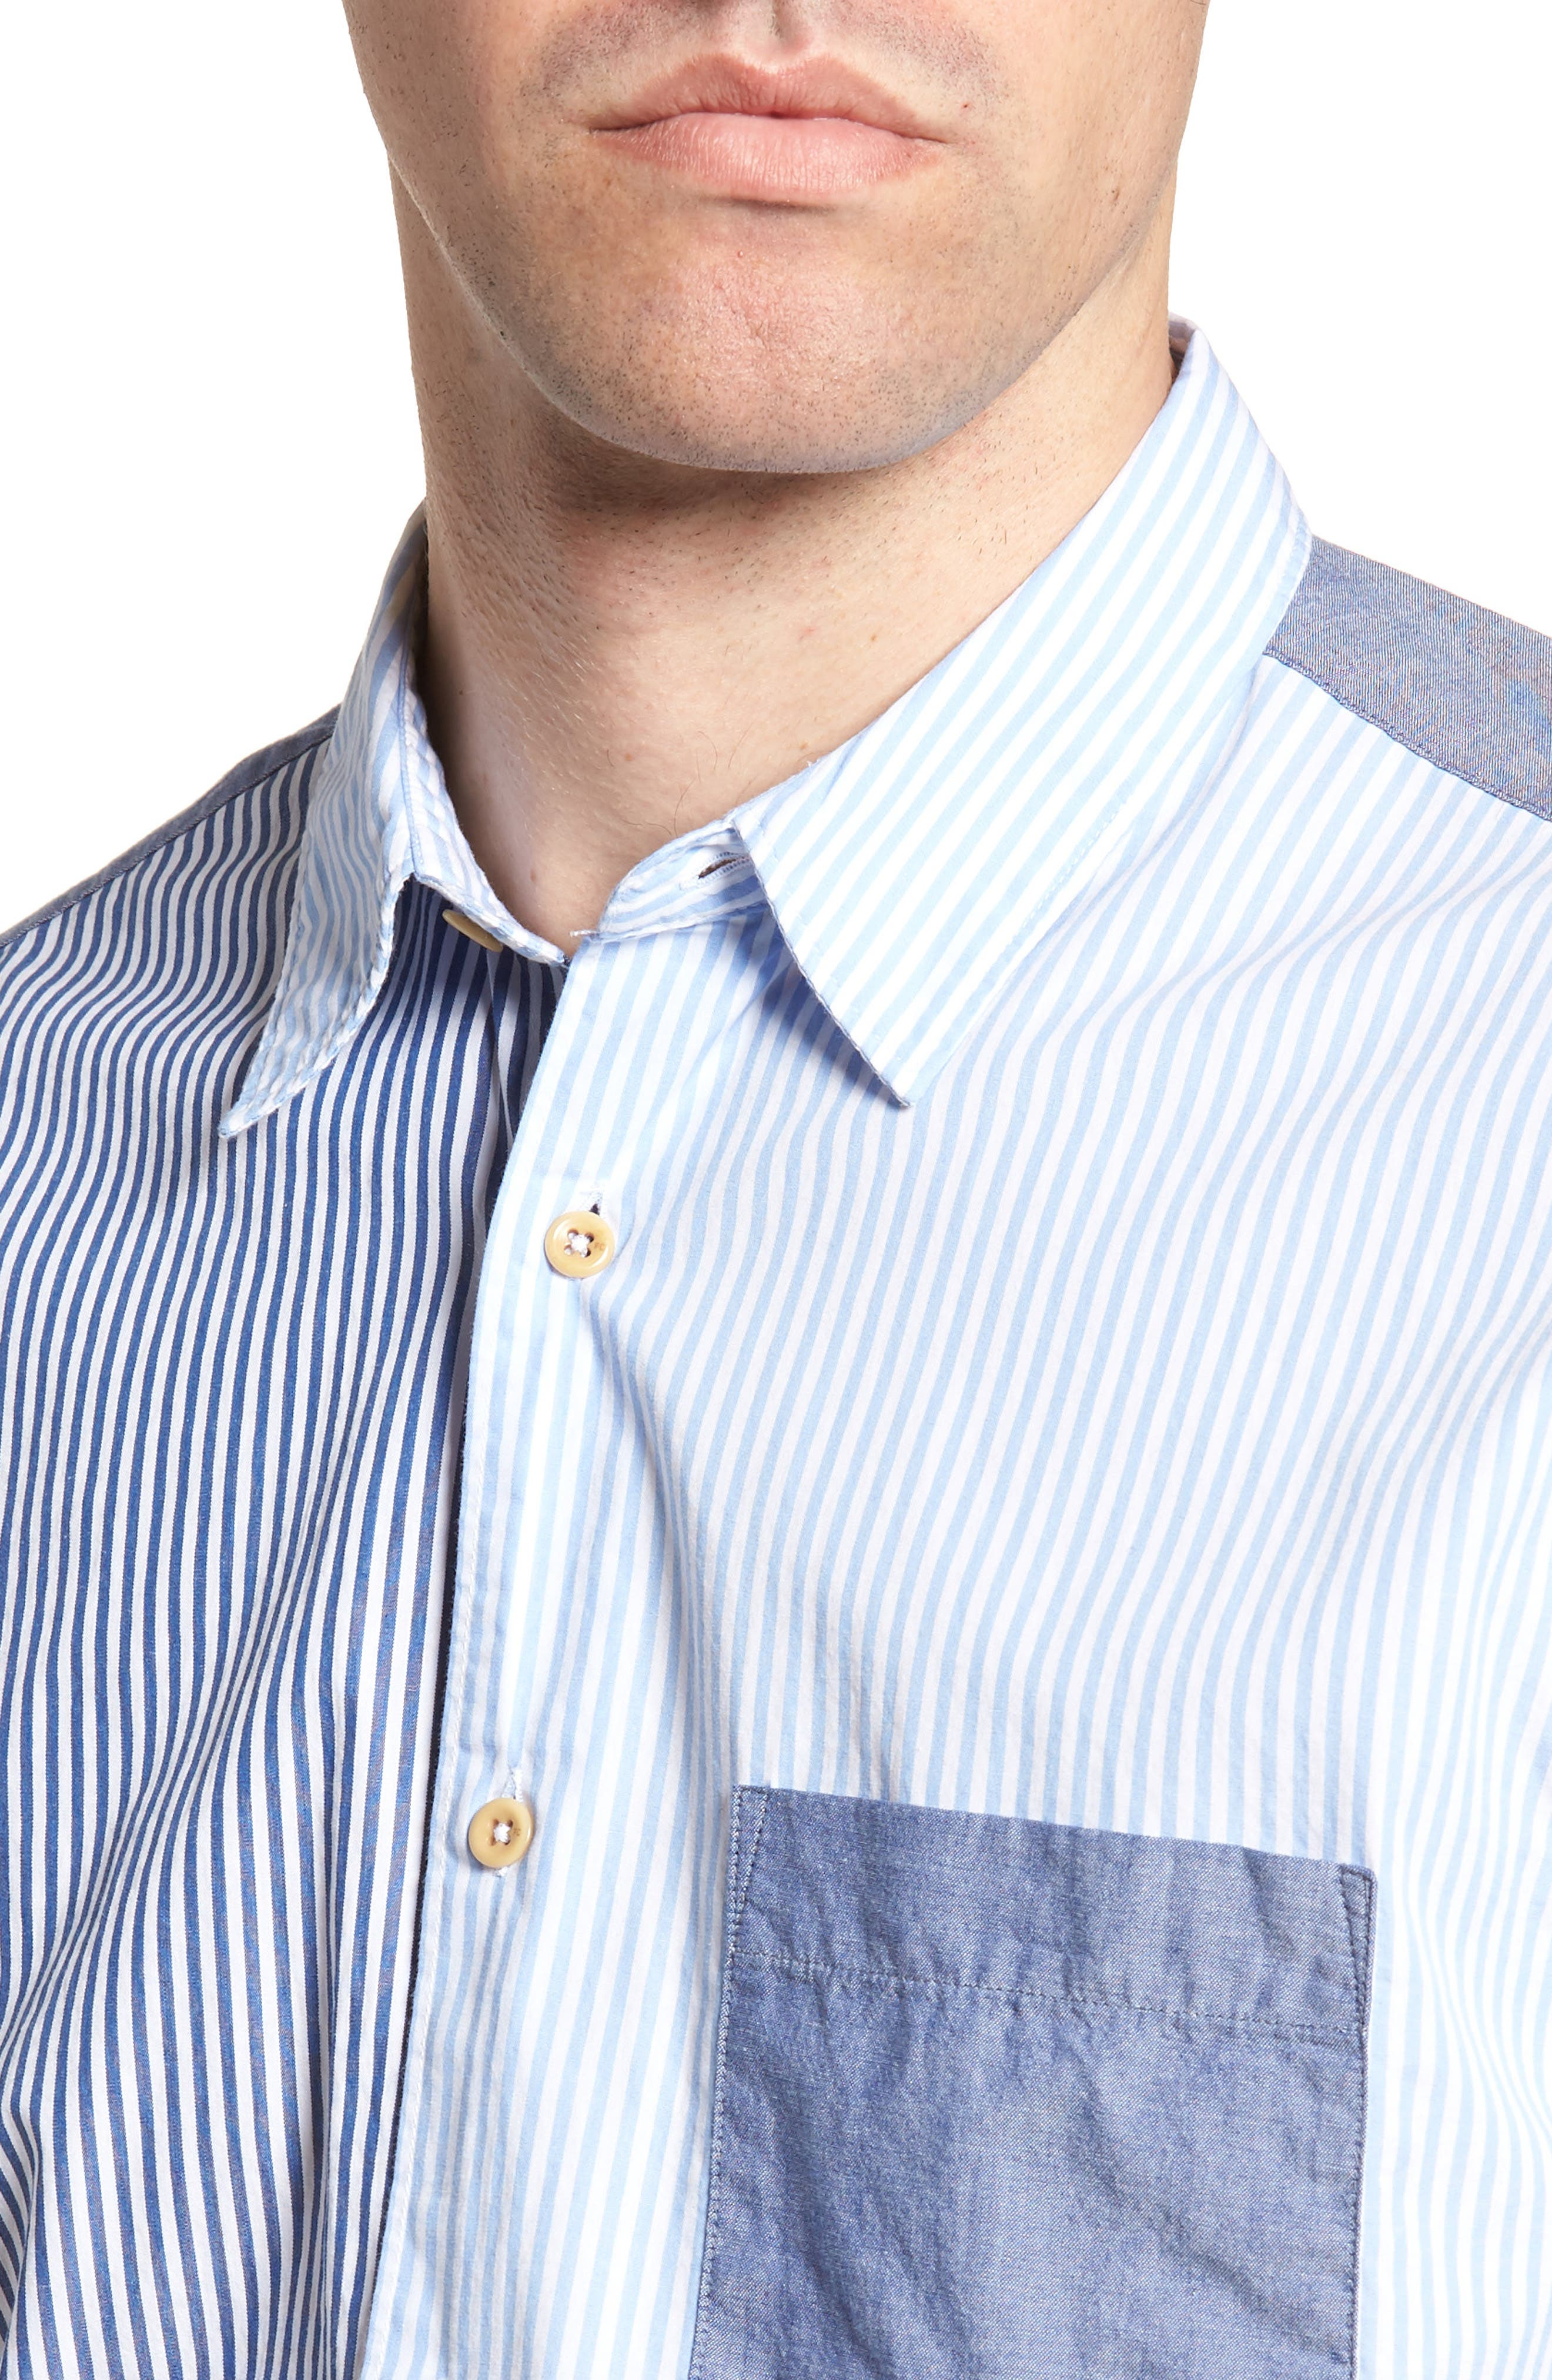 Patchwork Relaxed Fit Sport Shirt,                             Alternate thumbnail 4, color,                             Blue Blood